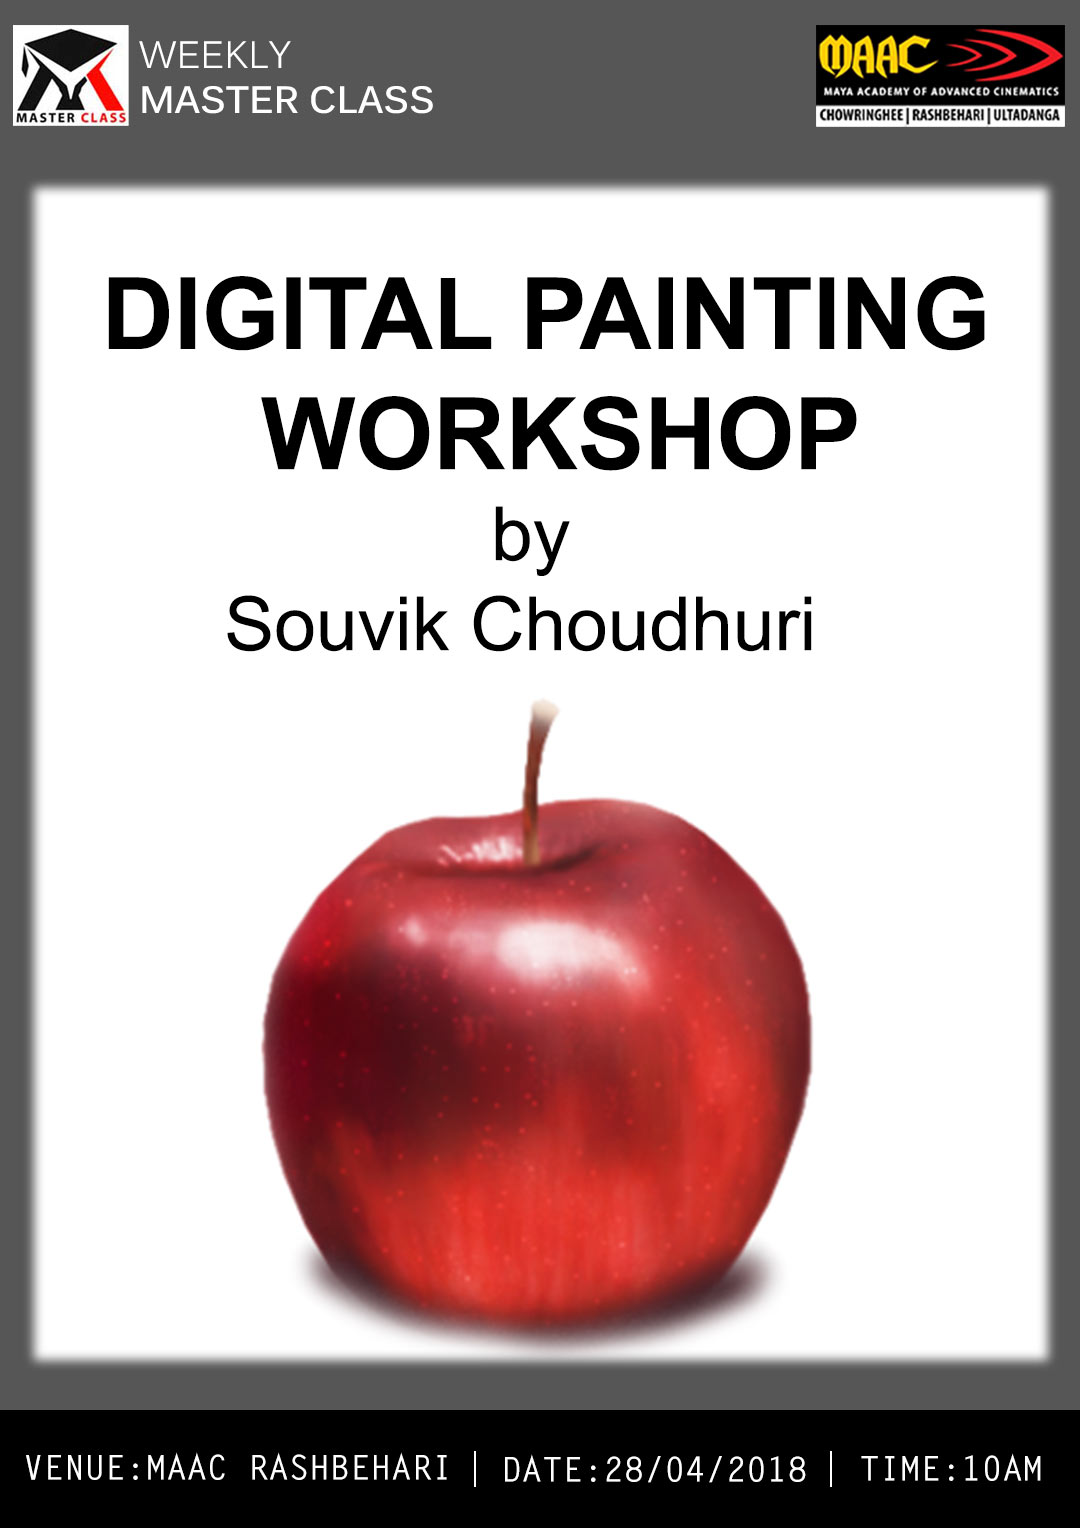 Weekly Master Class on Digital Painting Workshop